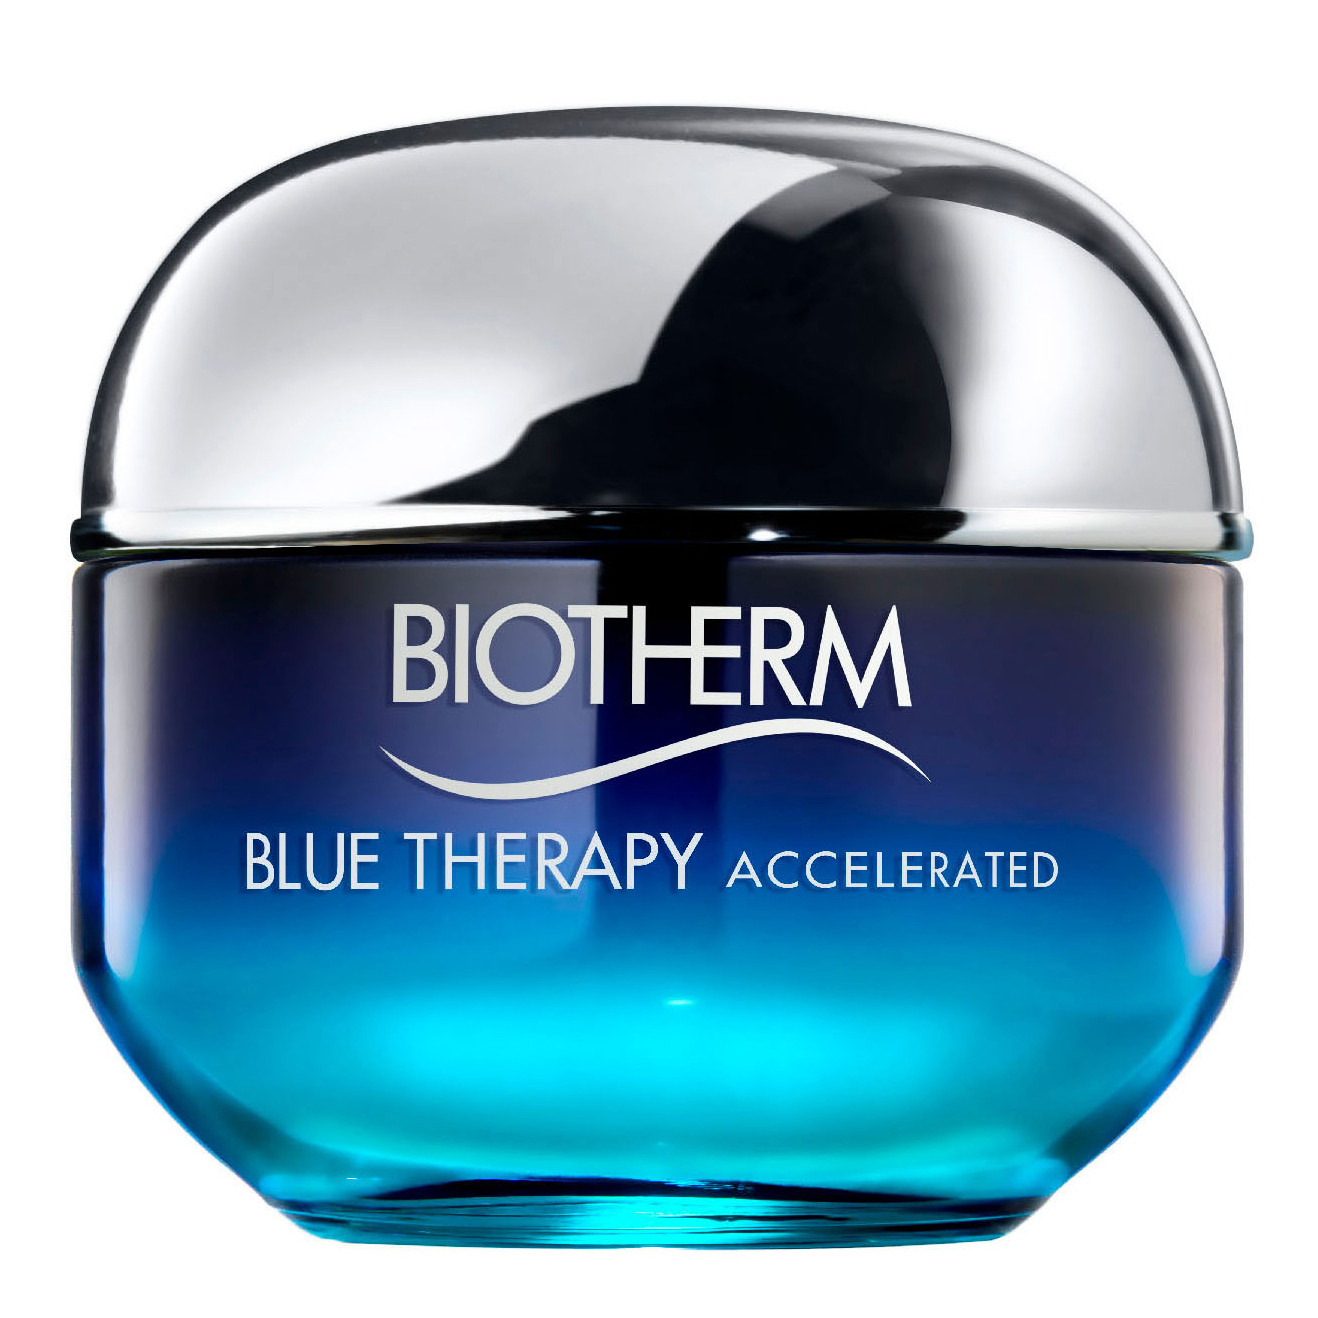 Blue Therapy Accelerated. BIOTHERM Blue Therapy Accelerated Cream 50ml